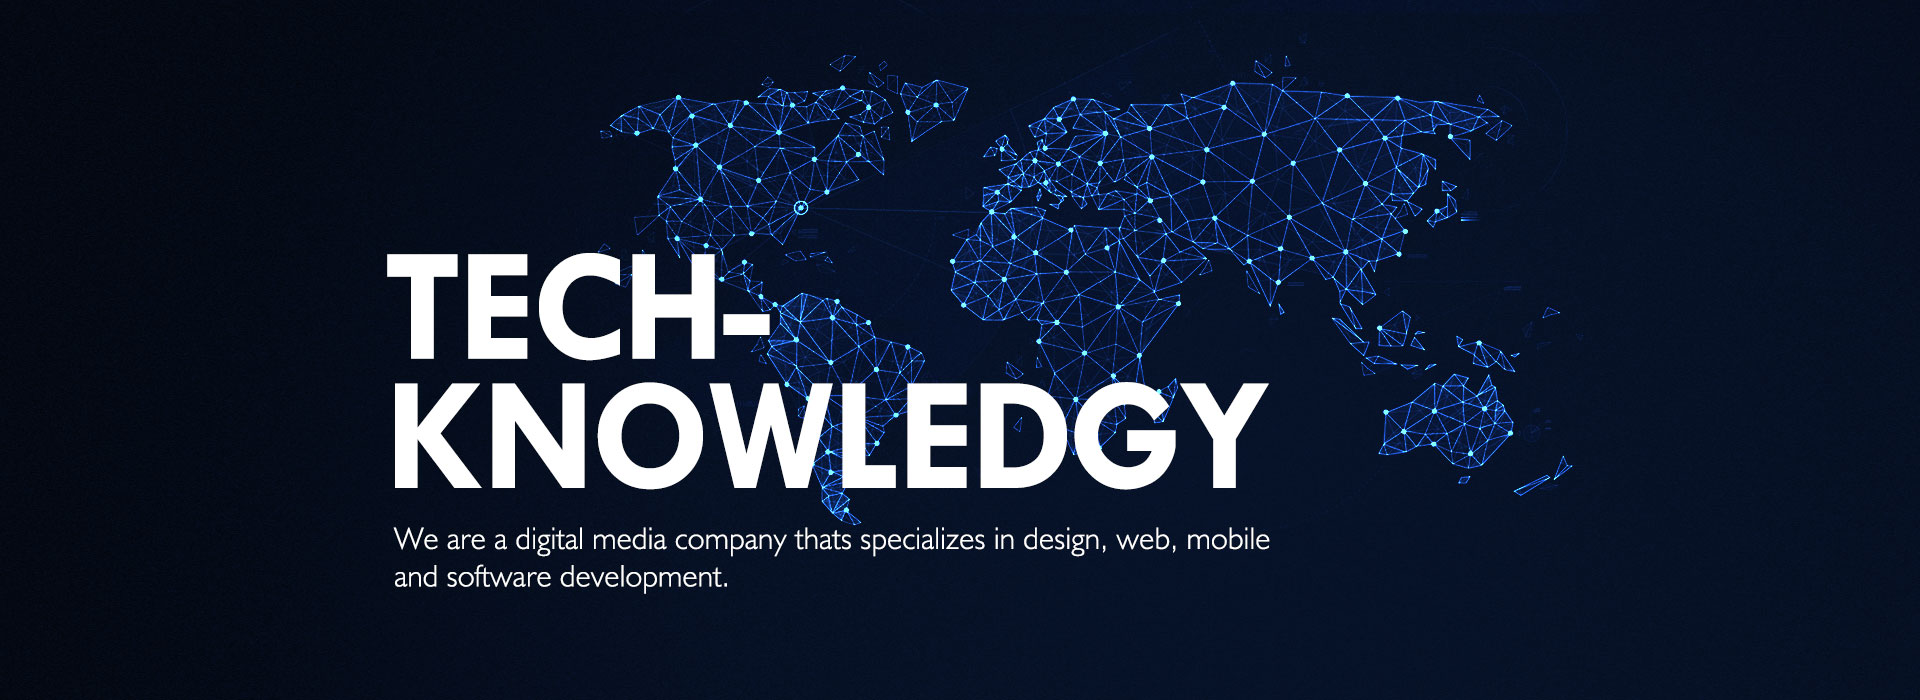 Tech-Knowledgy